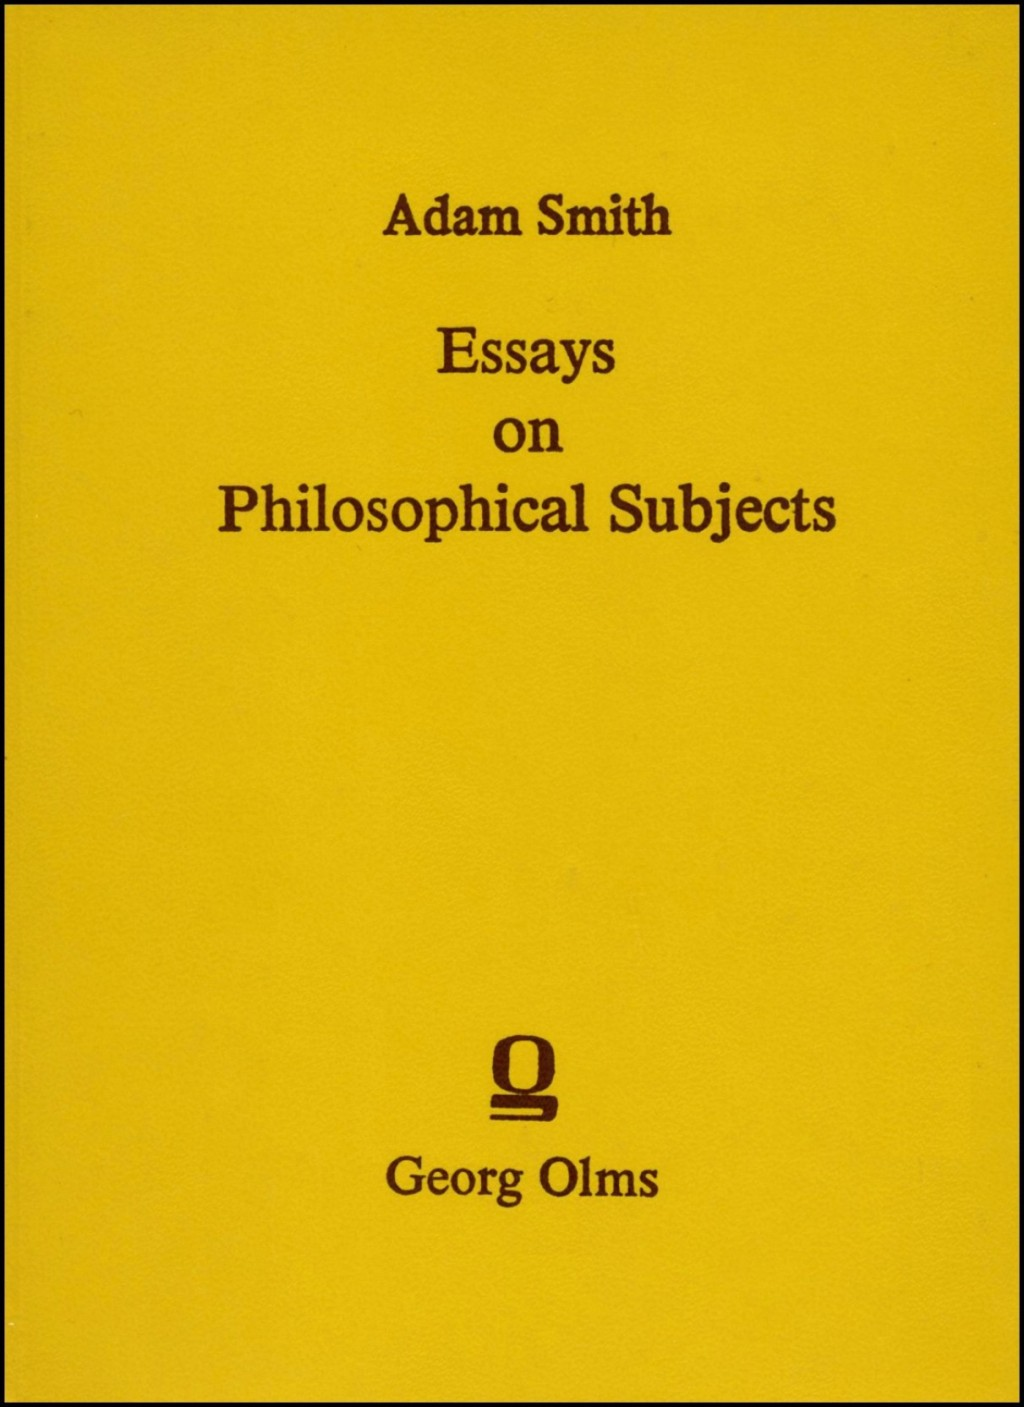 009 Essays On Philosophical Subjects Essay Example To Which Is Prefixed An Account Original Best Smith Pdf Large